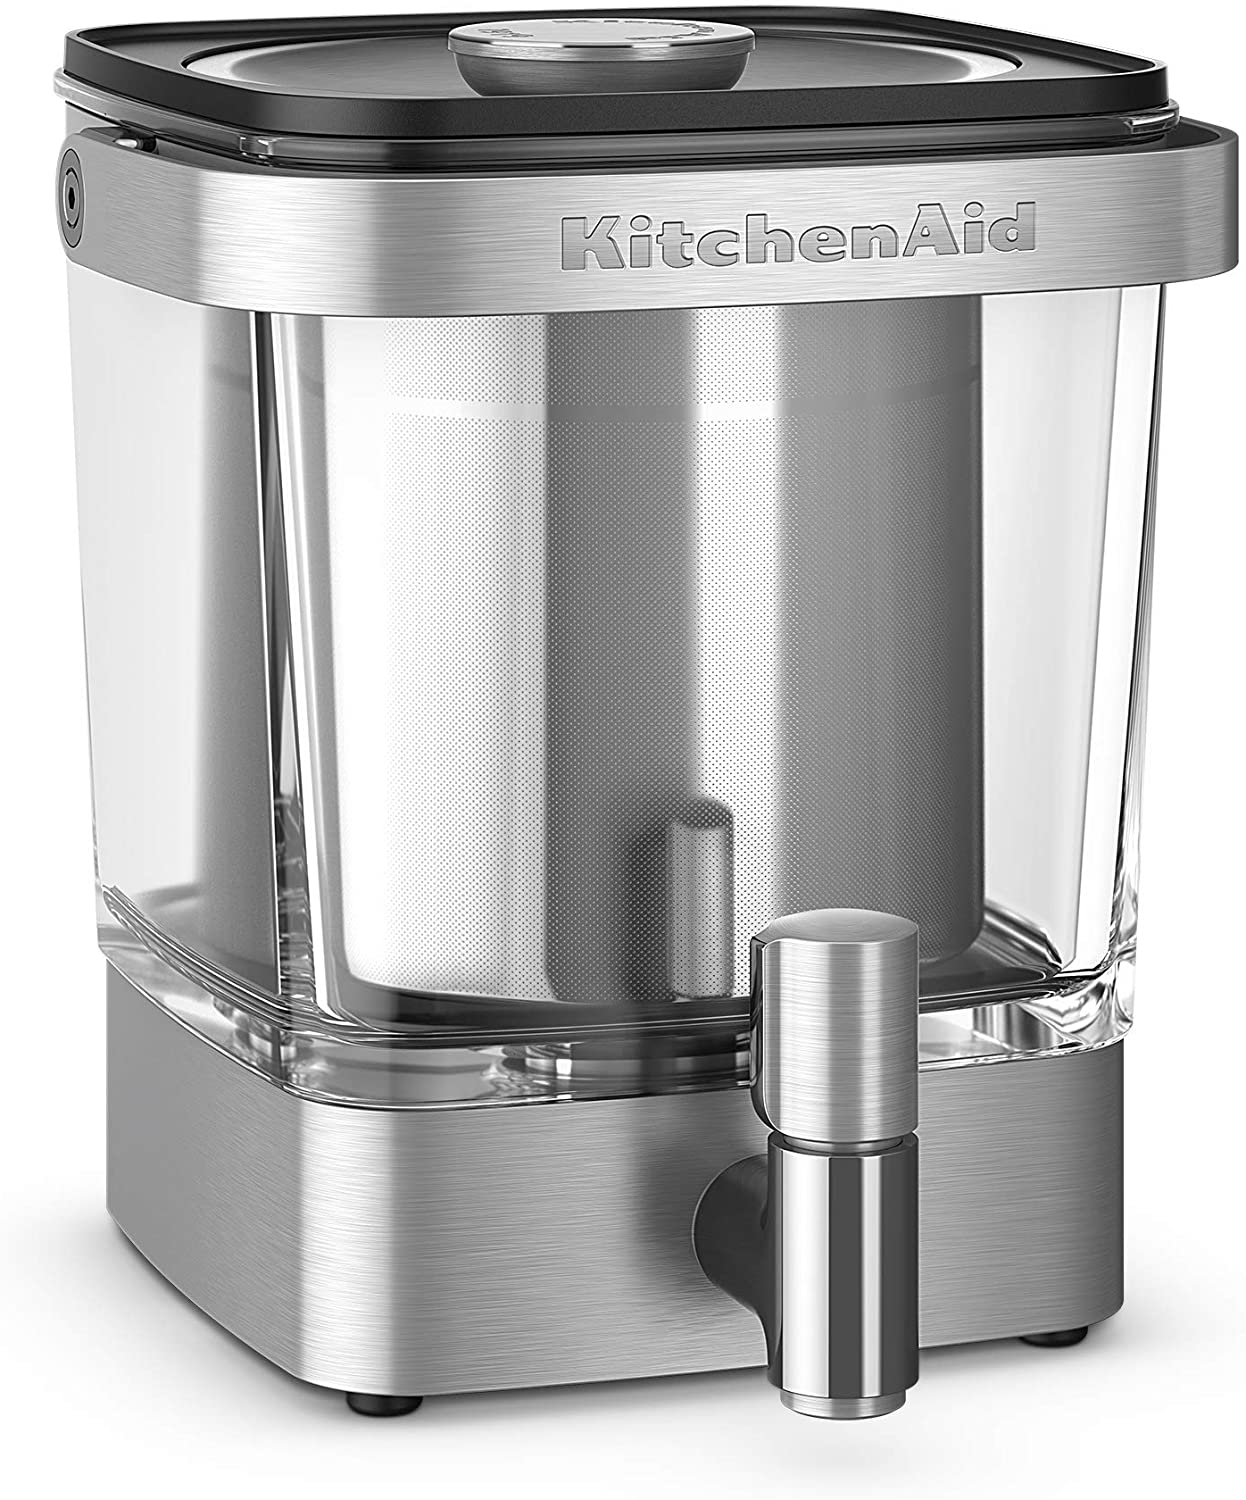 Review of KitchenAid KCM5912SX Cold Brew Coffee Maker 38 Ounce Brushed Stainless Steel